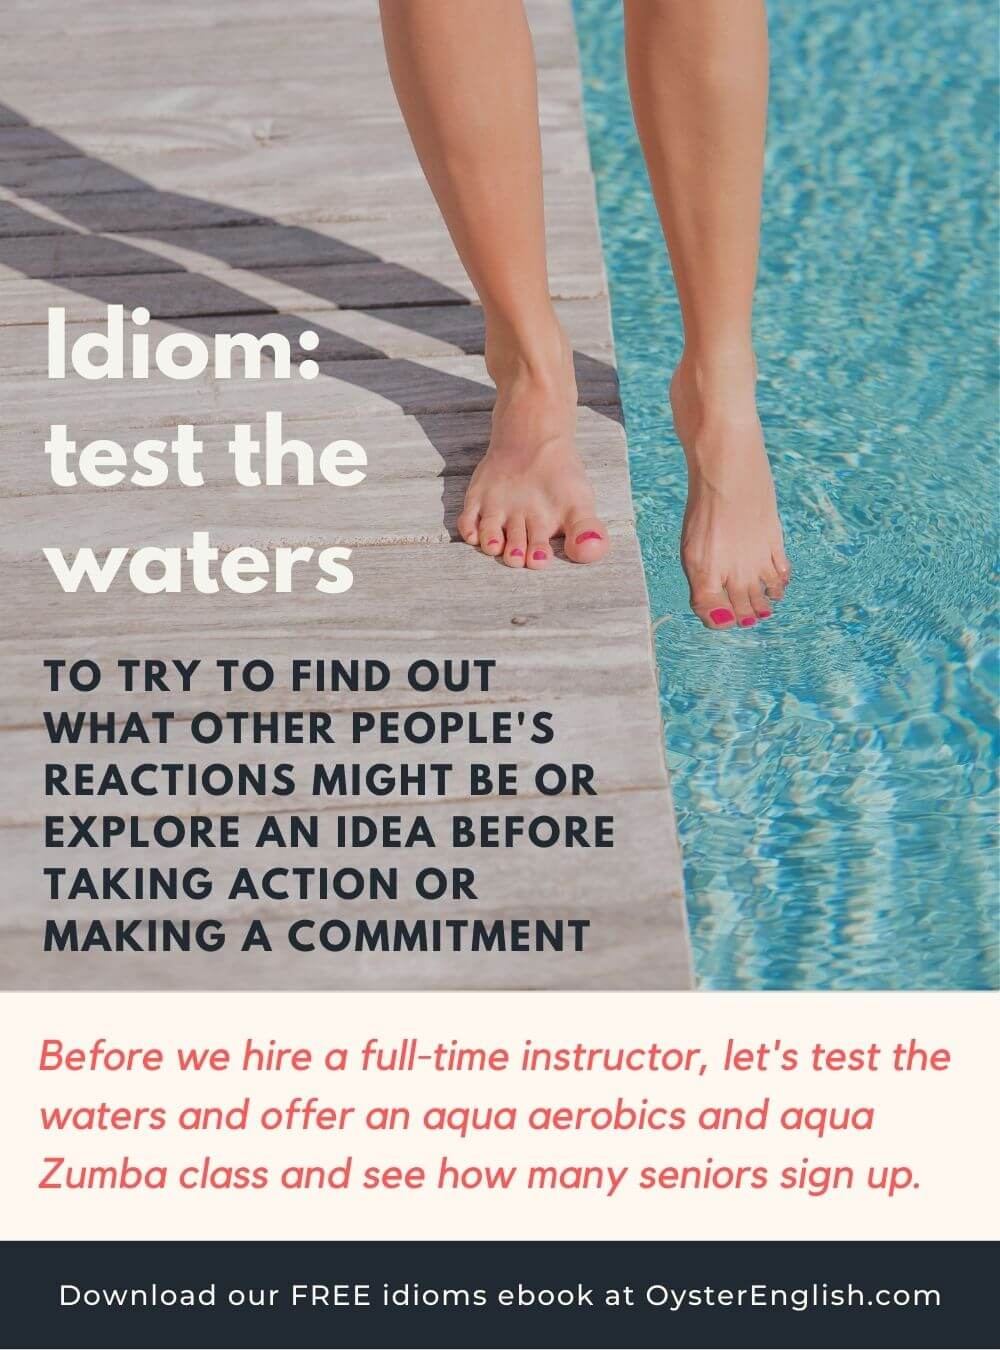 Image of woman dipping her toes into a pool: Before we hire an instructor, let's test the waters and offer an aqua aerobics and aqua Zumba class and see how many seniors sign up.